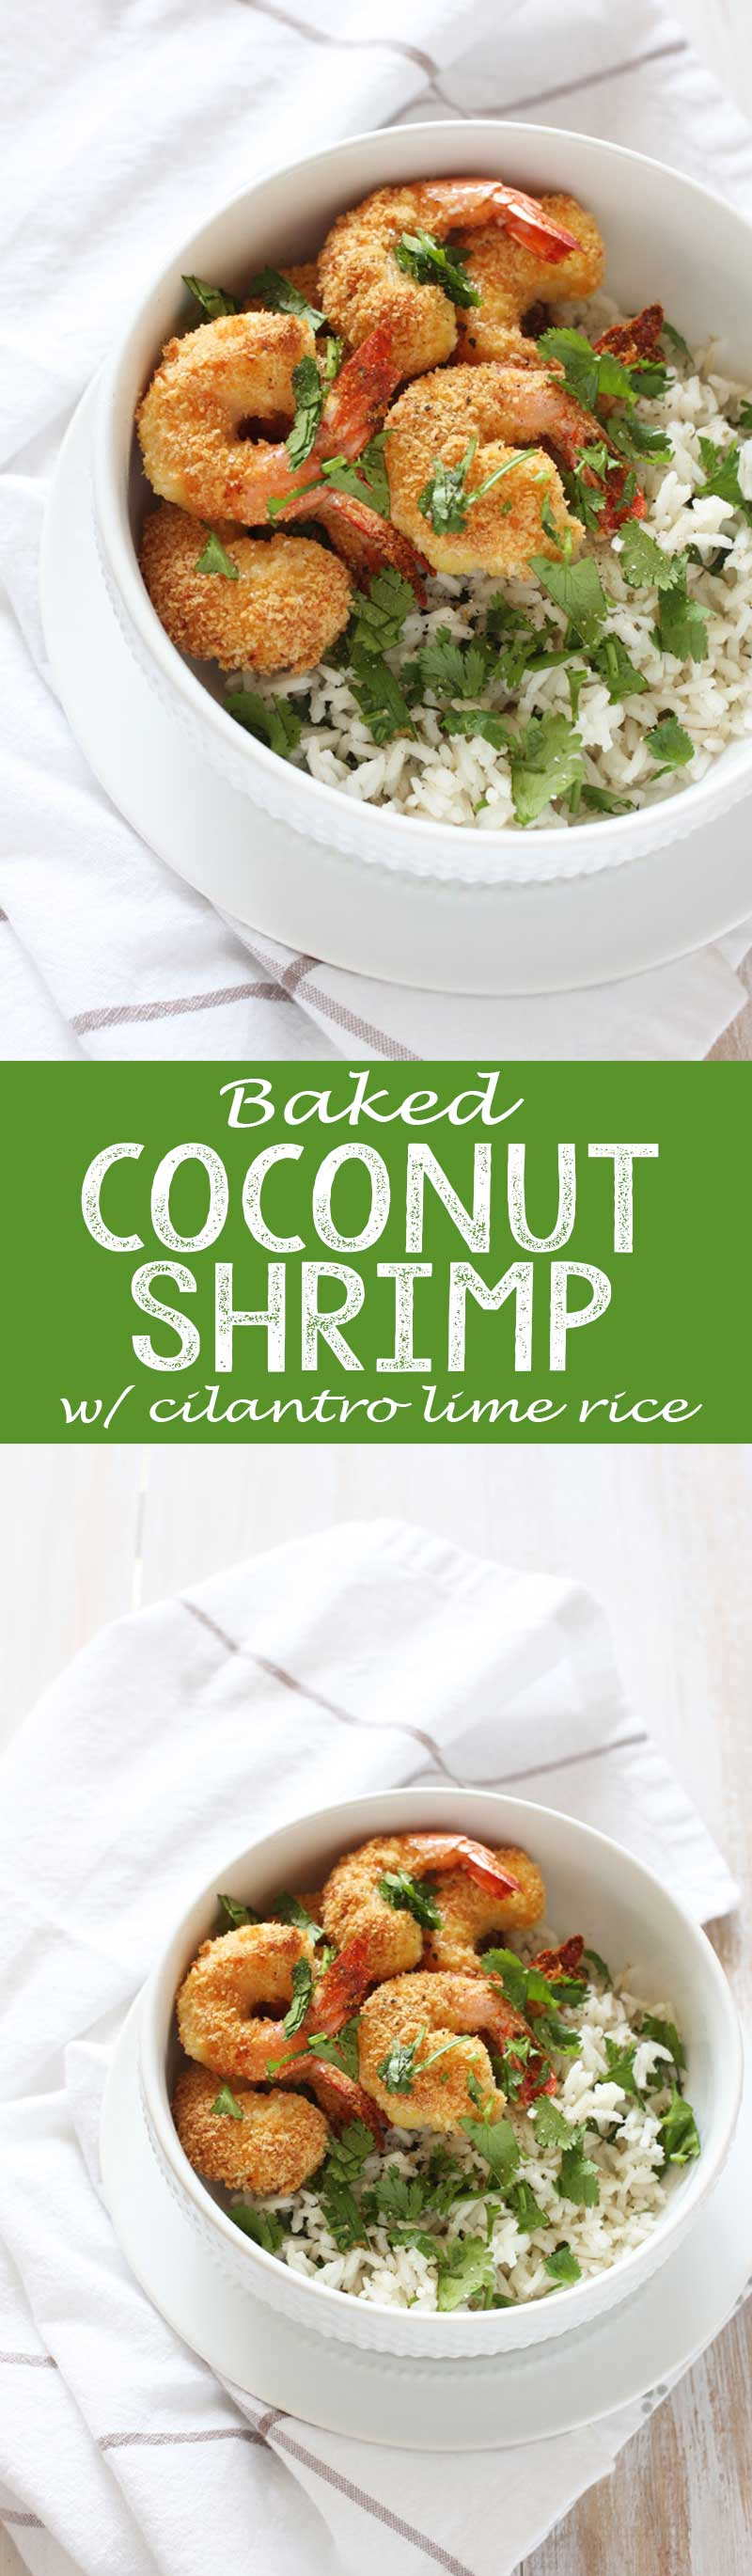 Baked Coconut Shrimp with Cilantro Lime Rice